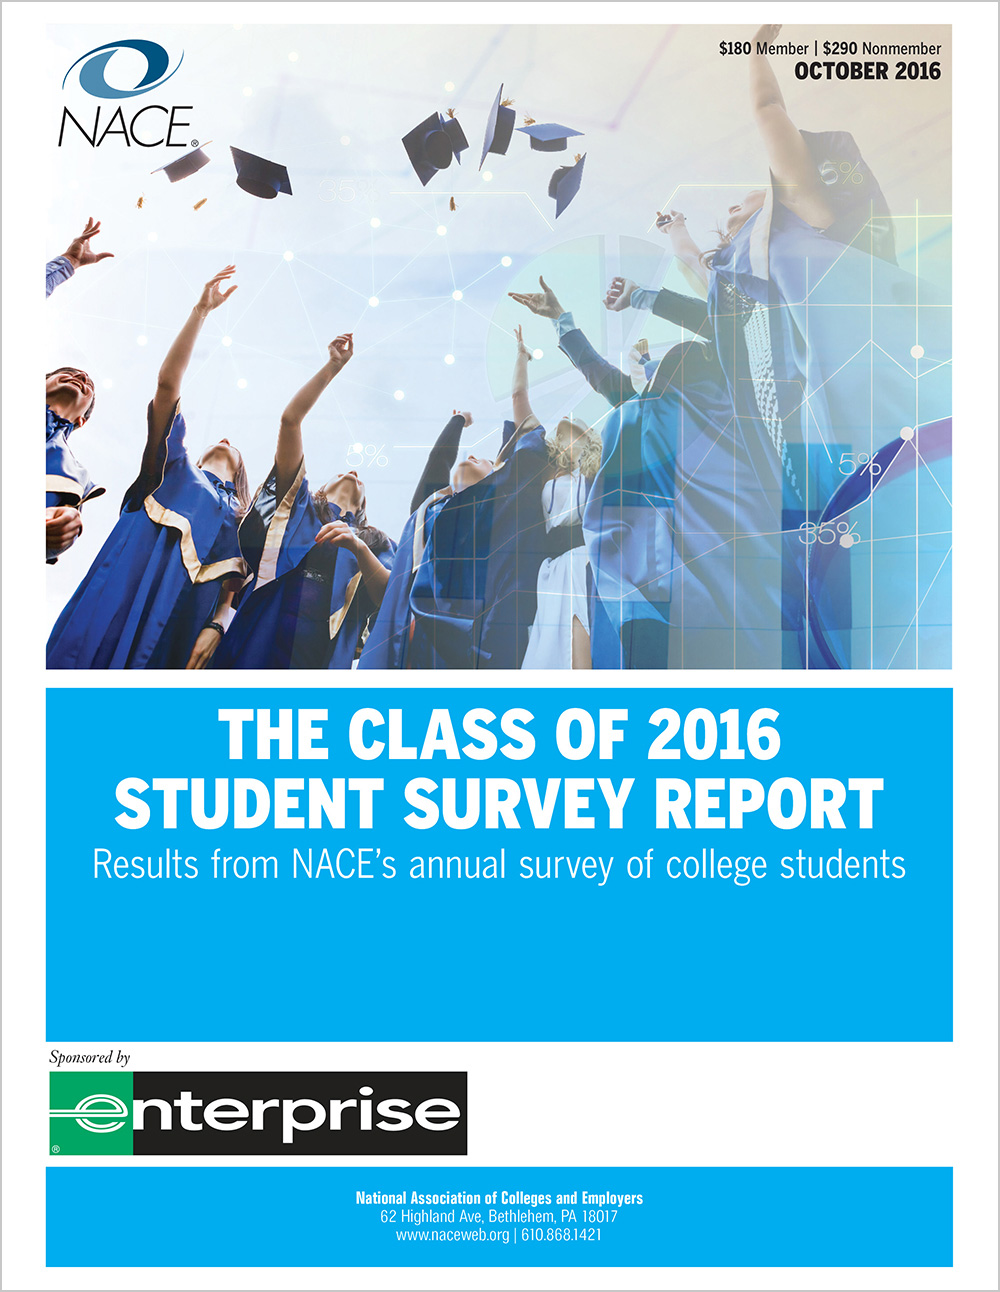 The Class of 2016 Student Survey Report